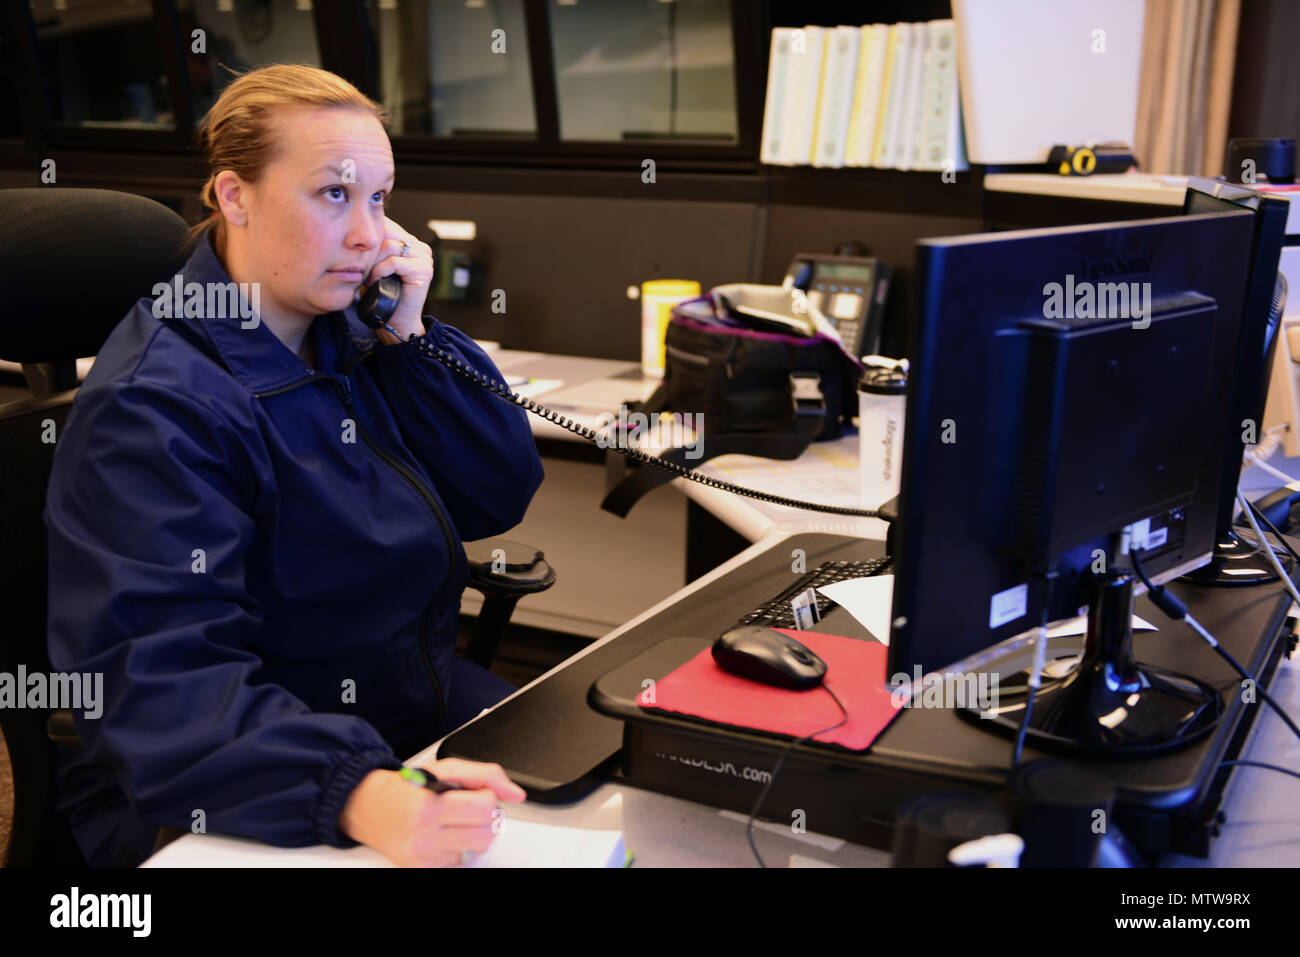 Chief Petty Officer Nichole Vital stands a 12-hour watch on duty as an operations specialist in the 13th Coast Guard District Command Center, Jan. 9, 2017. Vital is one of the few Coast Guard men and women who are responsible for monitoring a multi-mission communication platform and responding to a variety of cases from search and rescue or law enforcement case execution, to combat information center operations or intelligence gathering. U.S. Coast Guard photo by Petty Officer 2nd Class Ali Flockerzi. - Stock Image